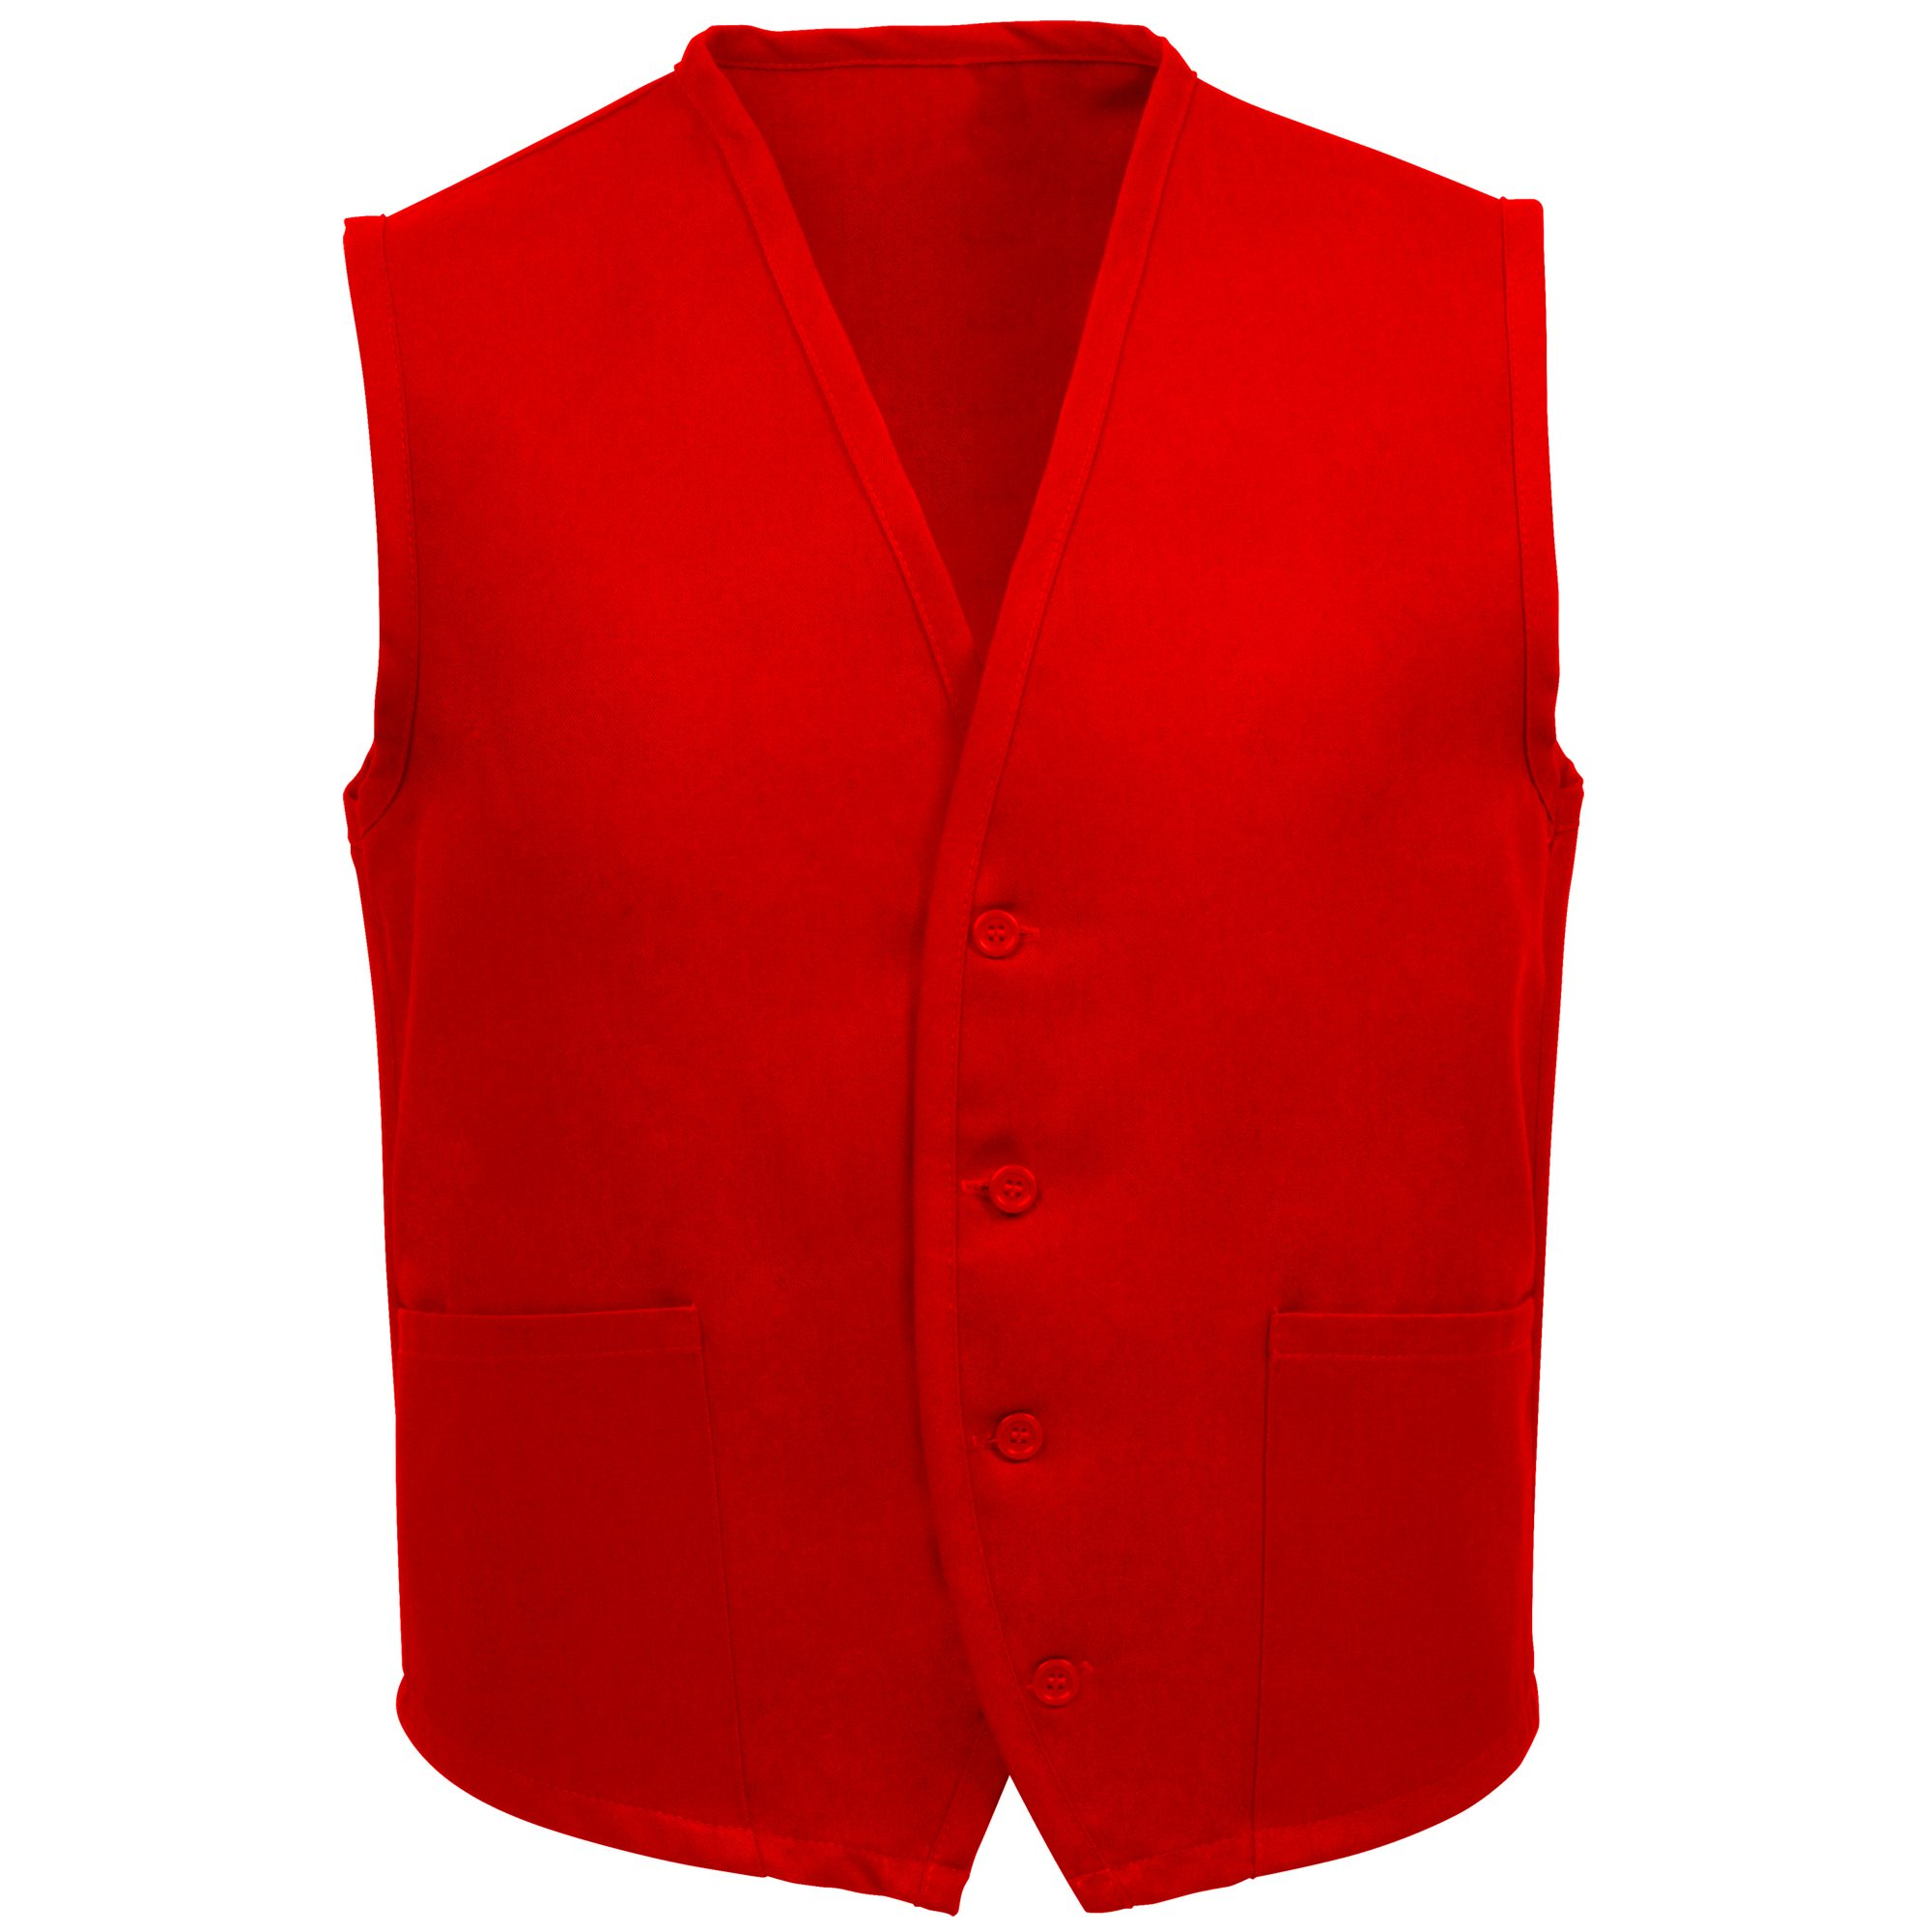 FAME 2 Pocket Vest (Red -3XL) V65-23310 by FAME